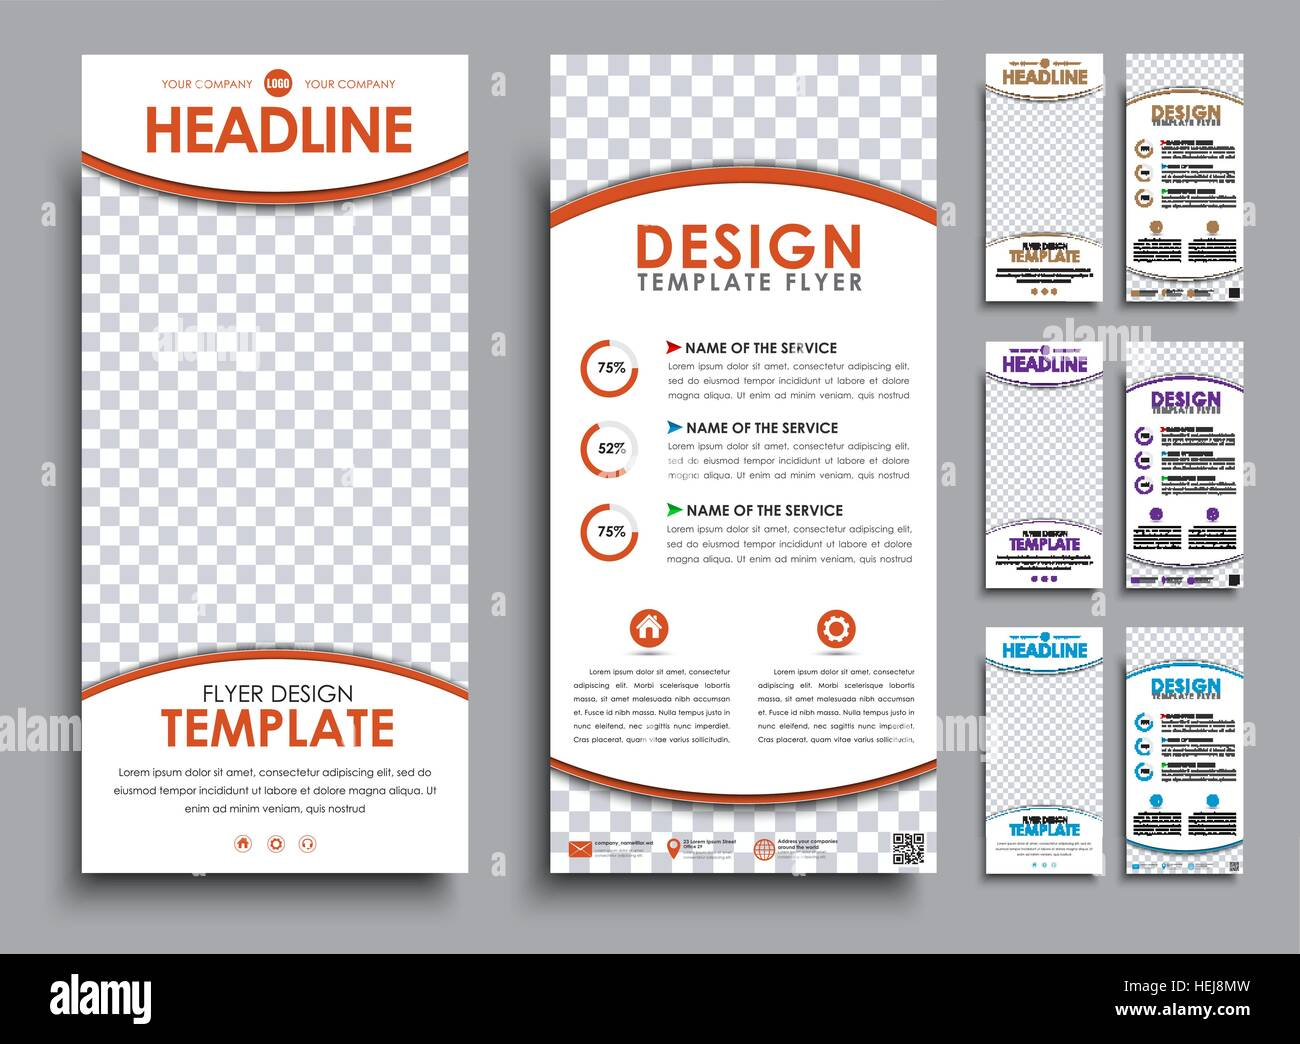 design of flyers size of 210x99 mm templates 2 pages with space for